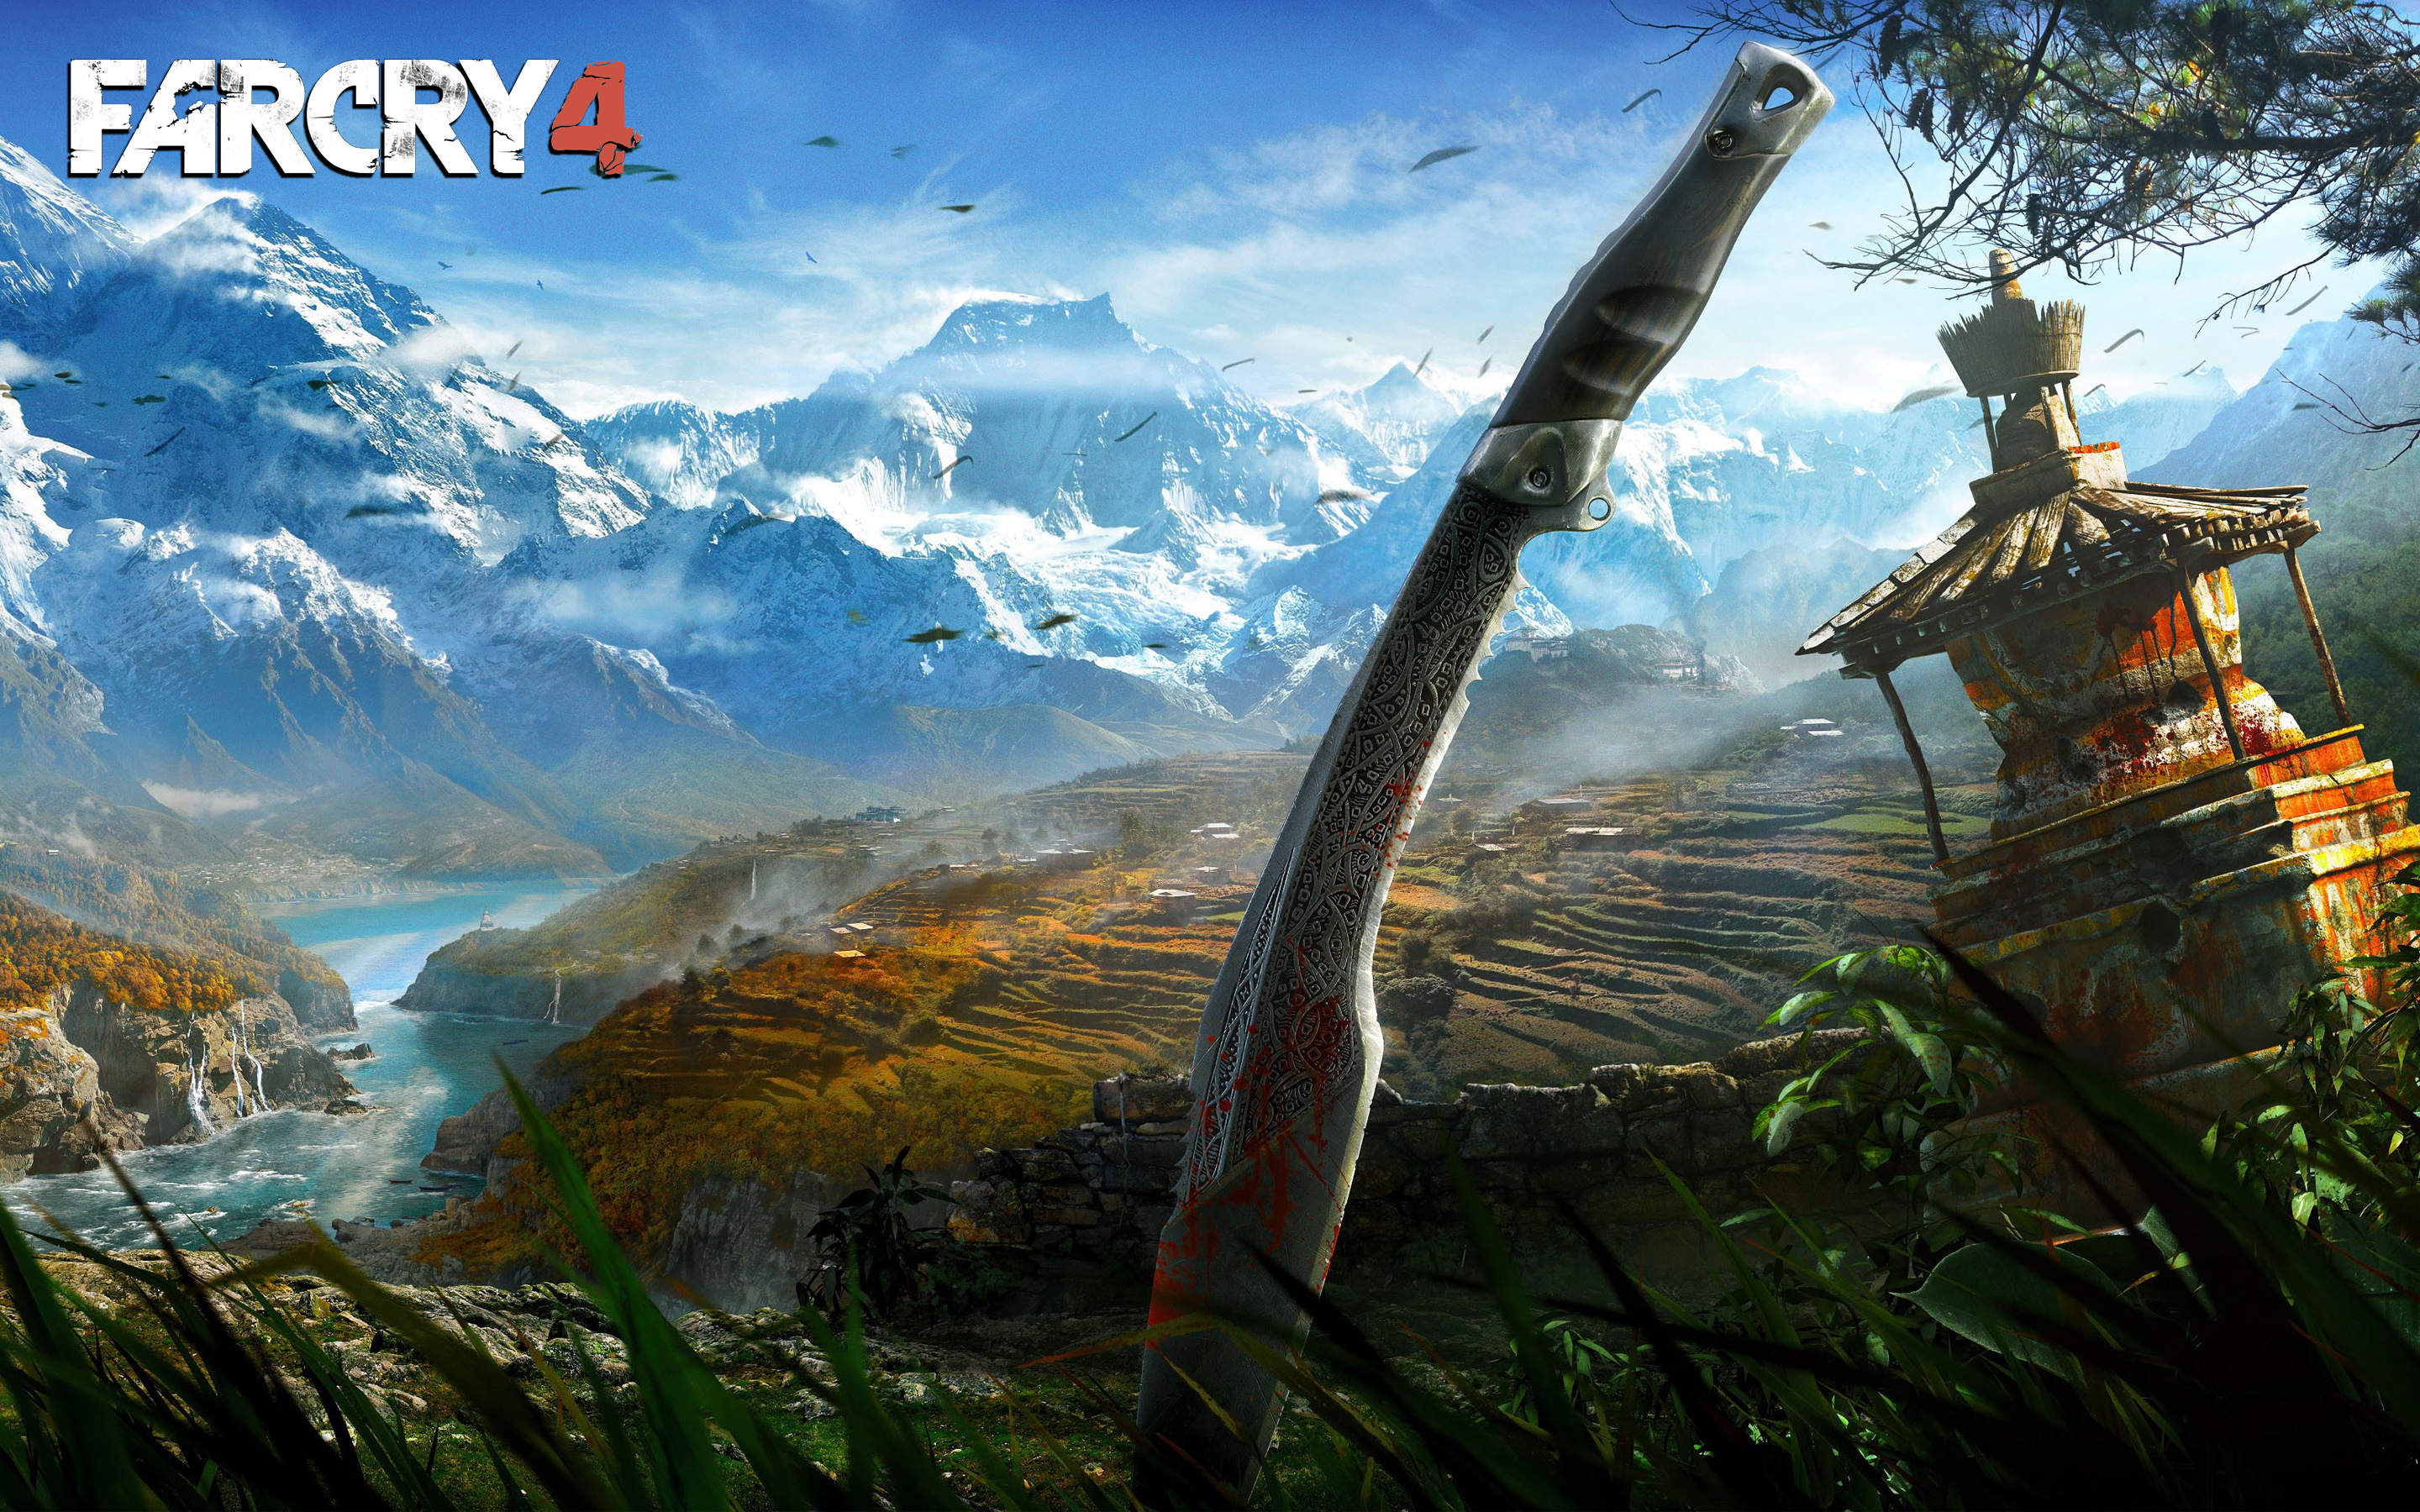 Far Cry 4 Himalayas Wallpapers HD Wallpapers 2880x1800